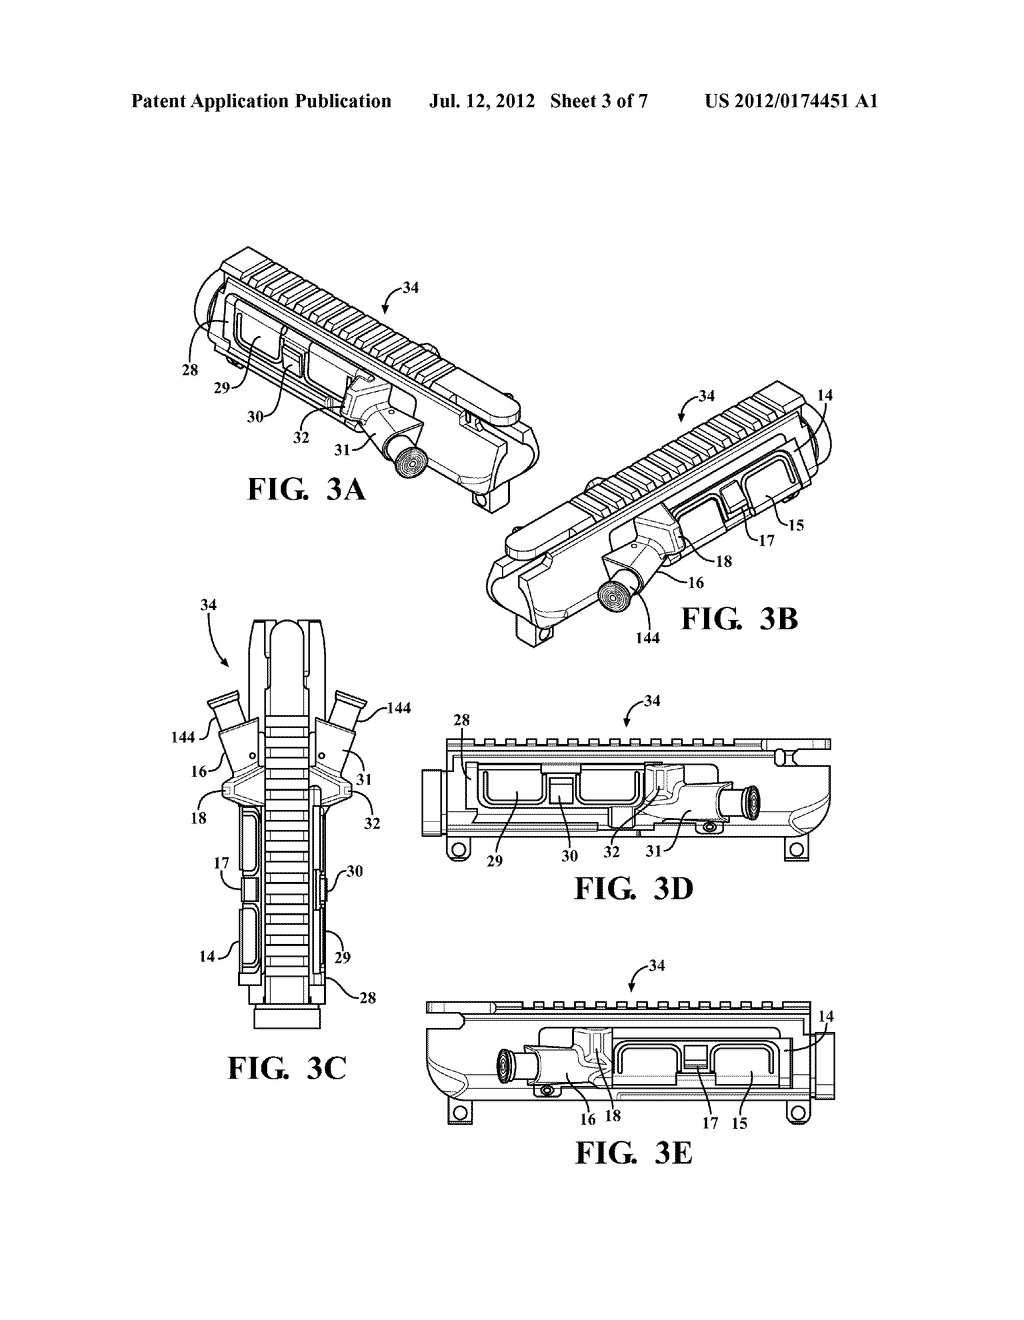 hight resolution of modifiable upper receiver for m 16 ar15 type firearm in particular for adapting to specific needs of right and left handed shooters diagram schematic